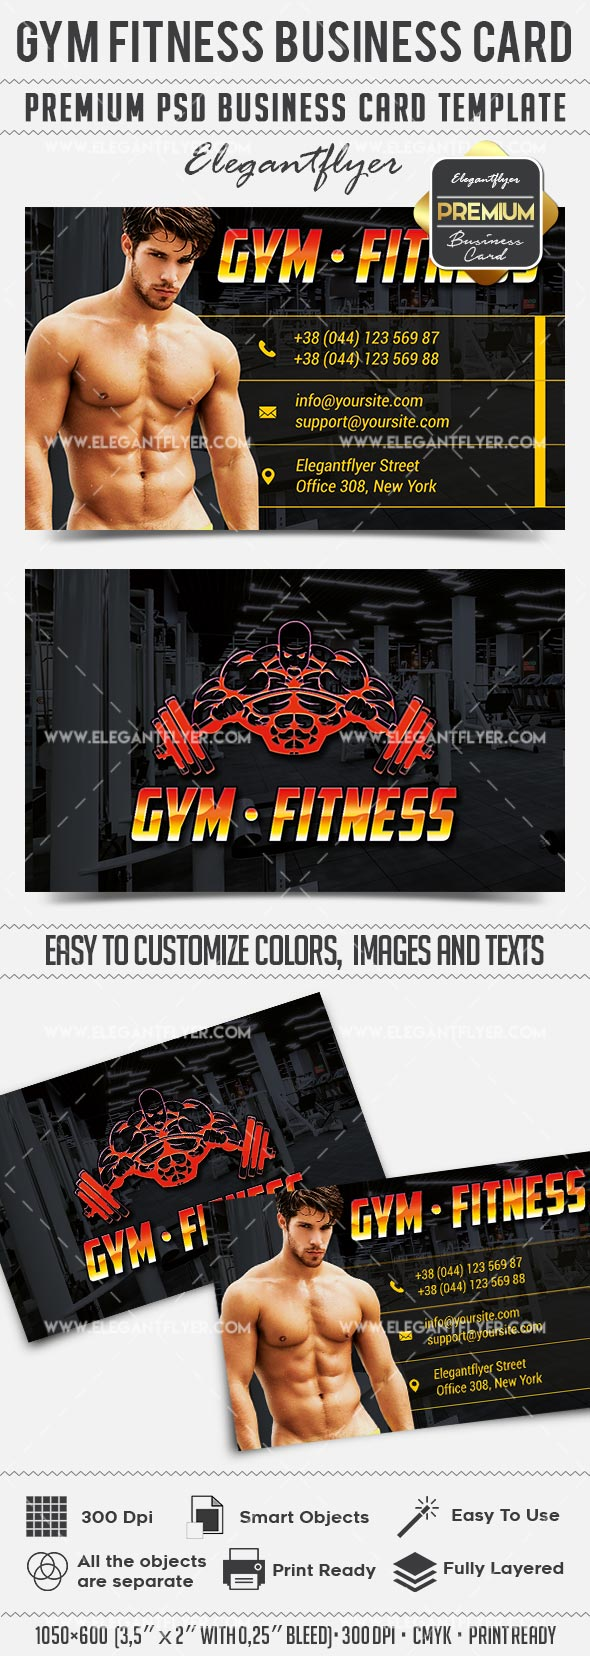 GYM Fitness – Business Card Templates PSD